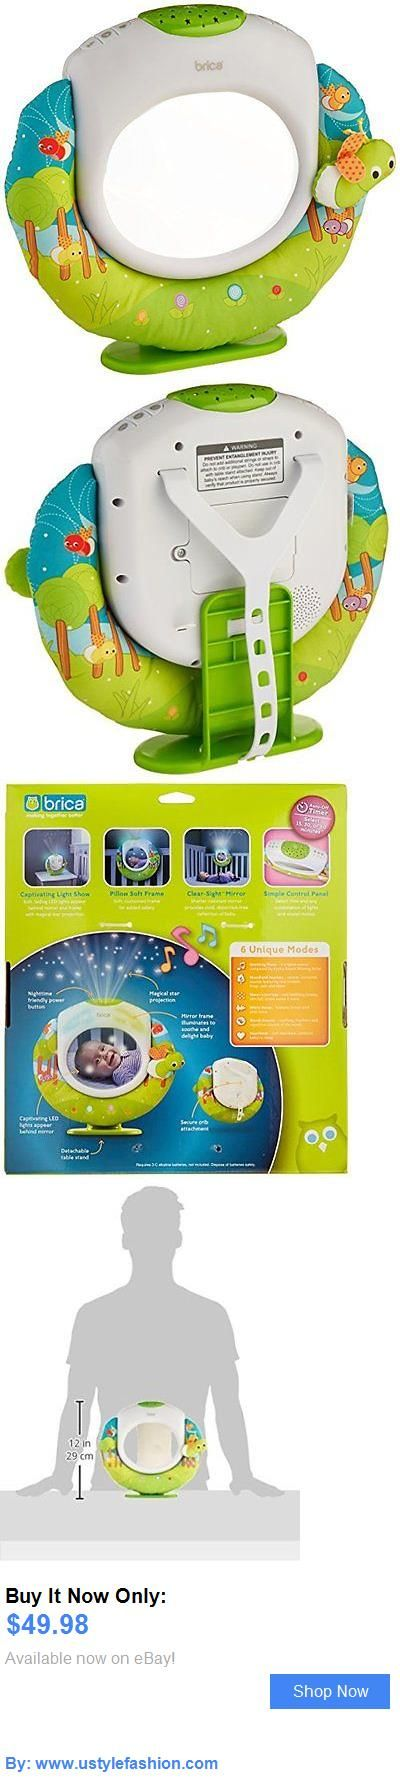 Crib Toys: Brica Magical Firefly Crib Soother And Projector New BUY IT NOW ONLY: $49.98 #ustylefashionCribToys OR #ustylefashion